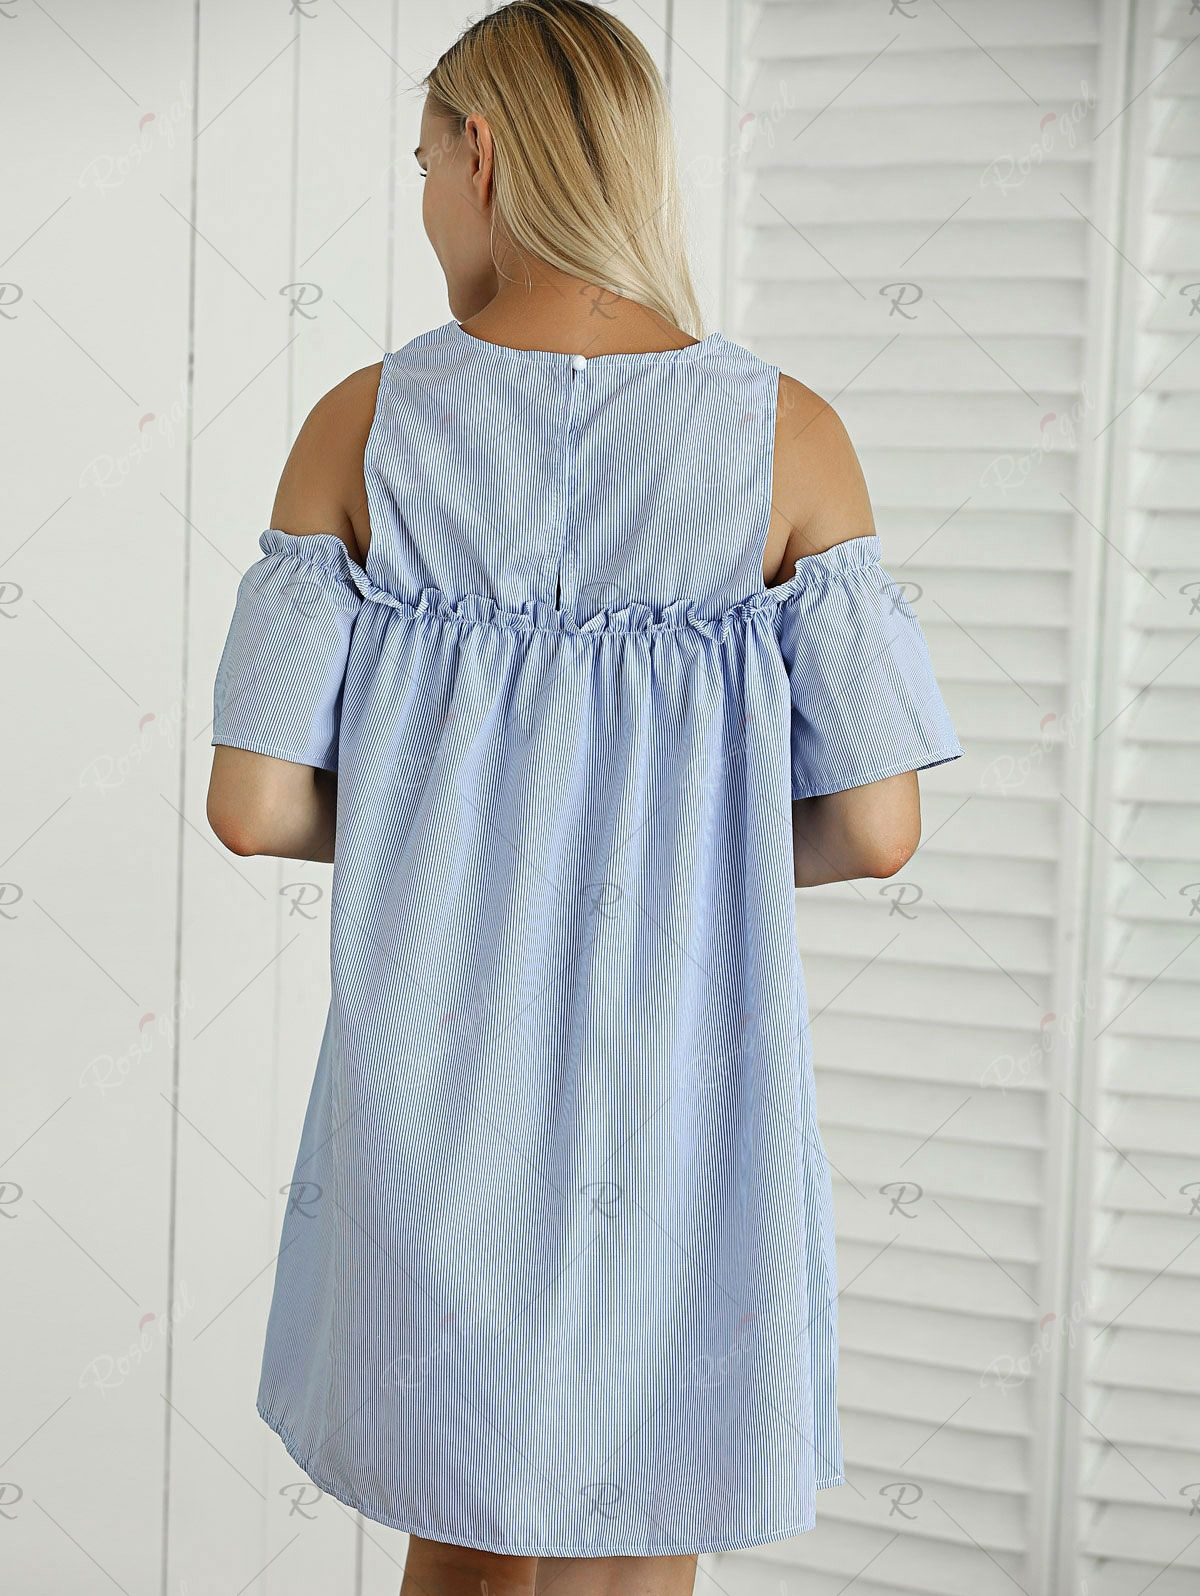 Striped cut out ruffled casual dress for summer ruffles fashion